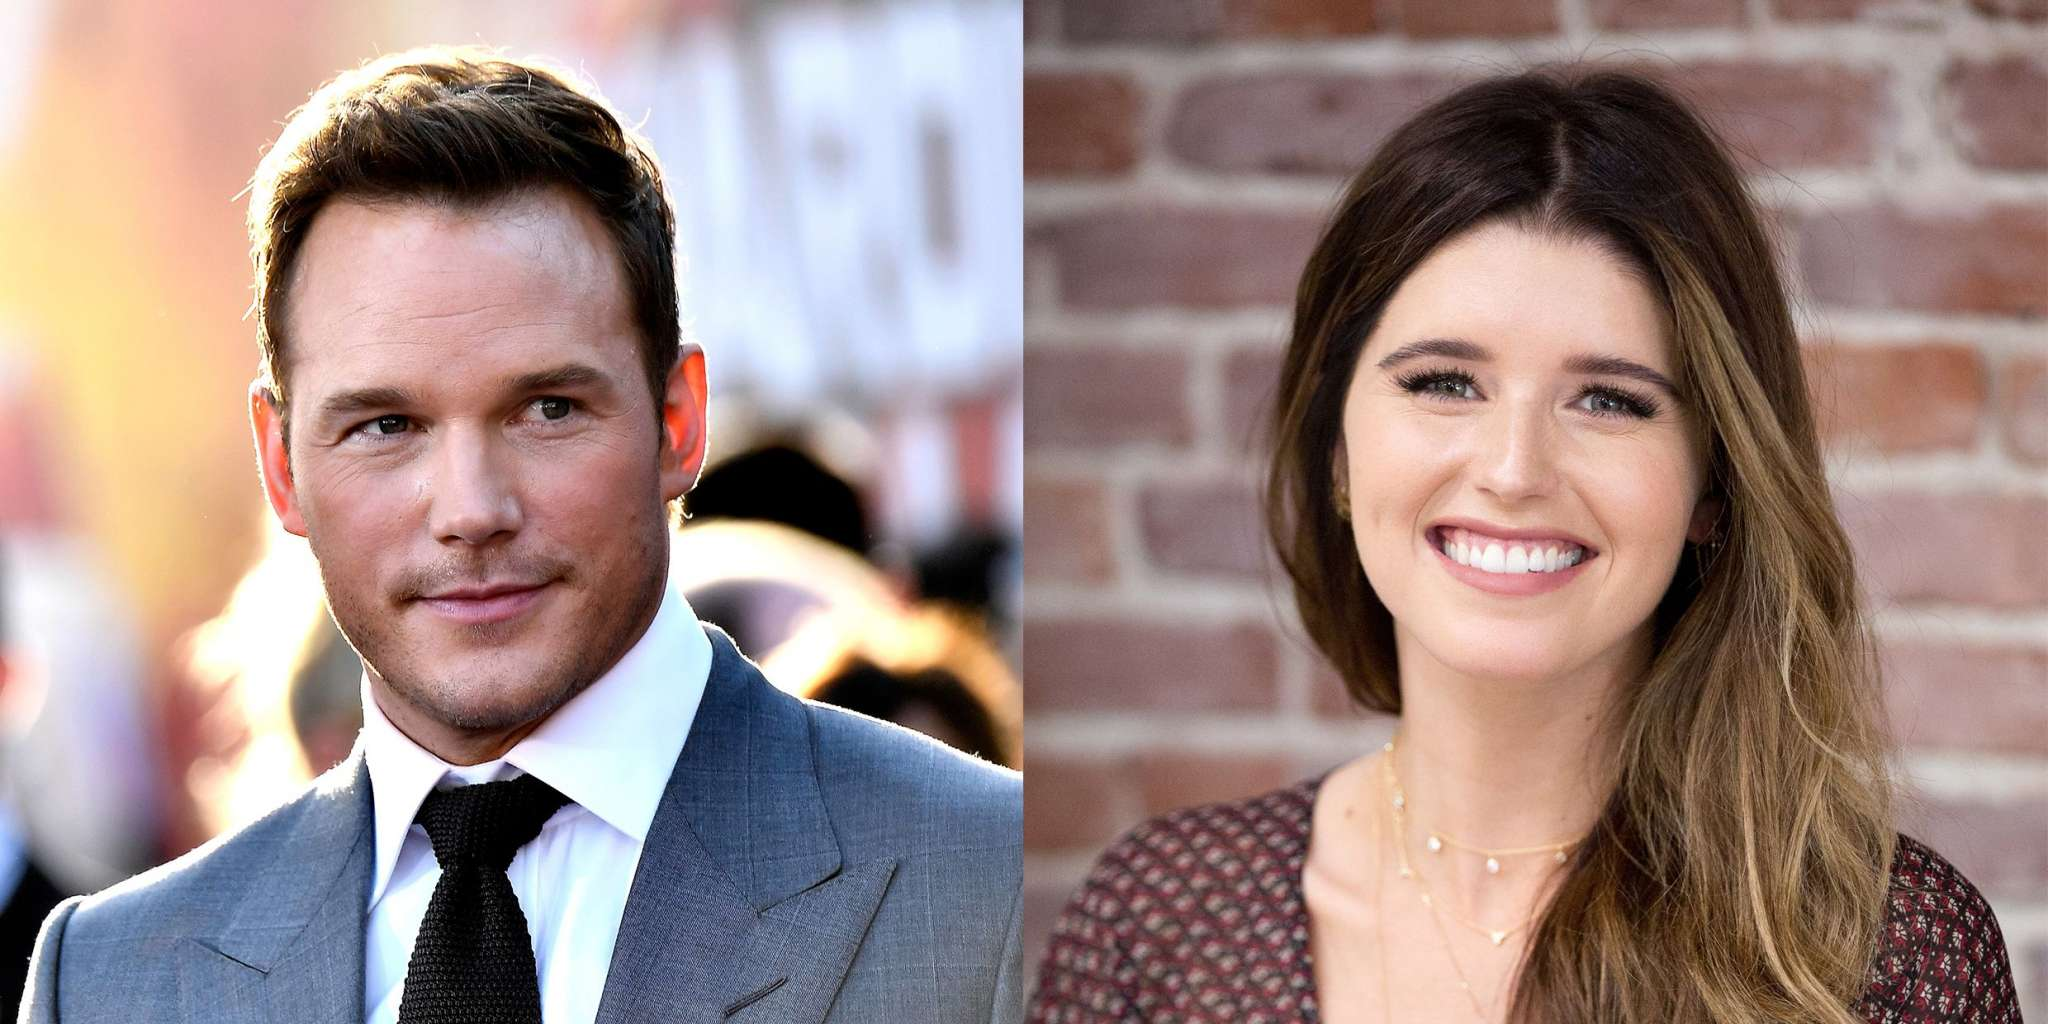 chris-pratt-and-katherine-schwarzenegger-not-in-a-hurry-to-get-married-taking-their-time-planning-the-wedding